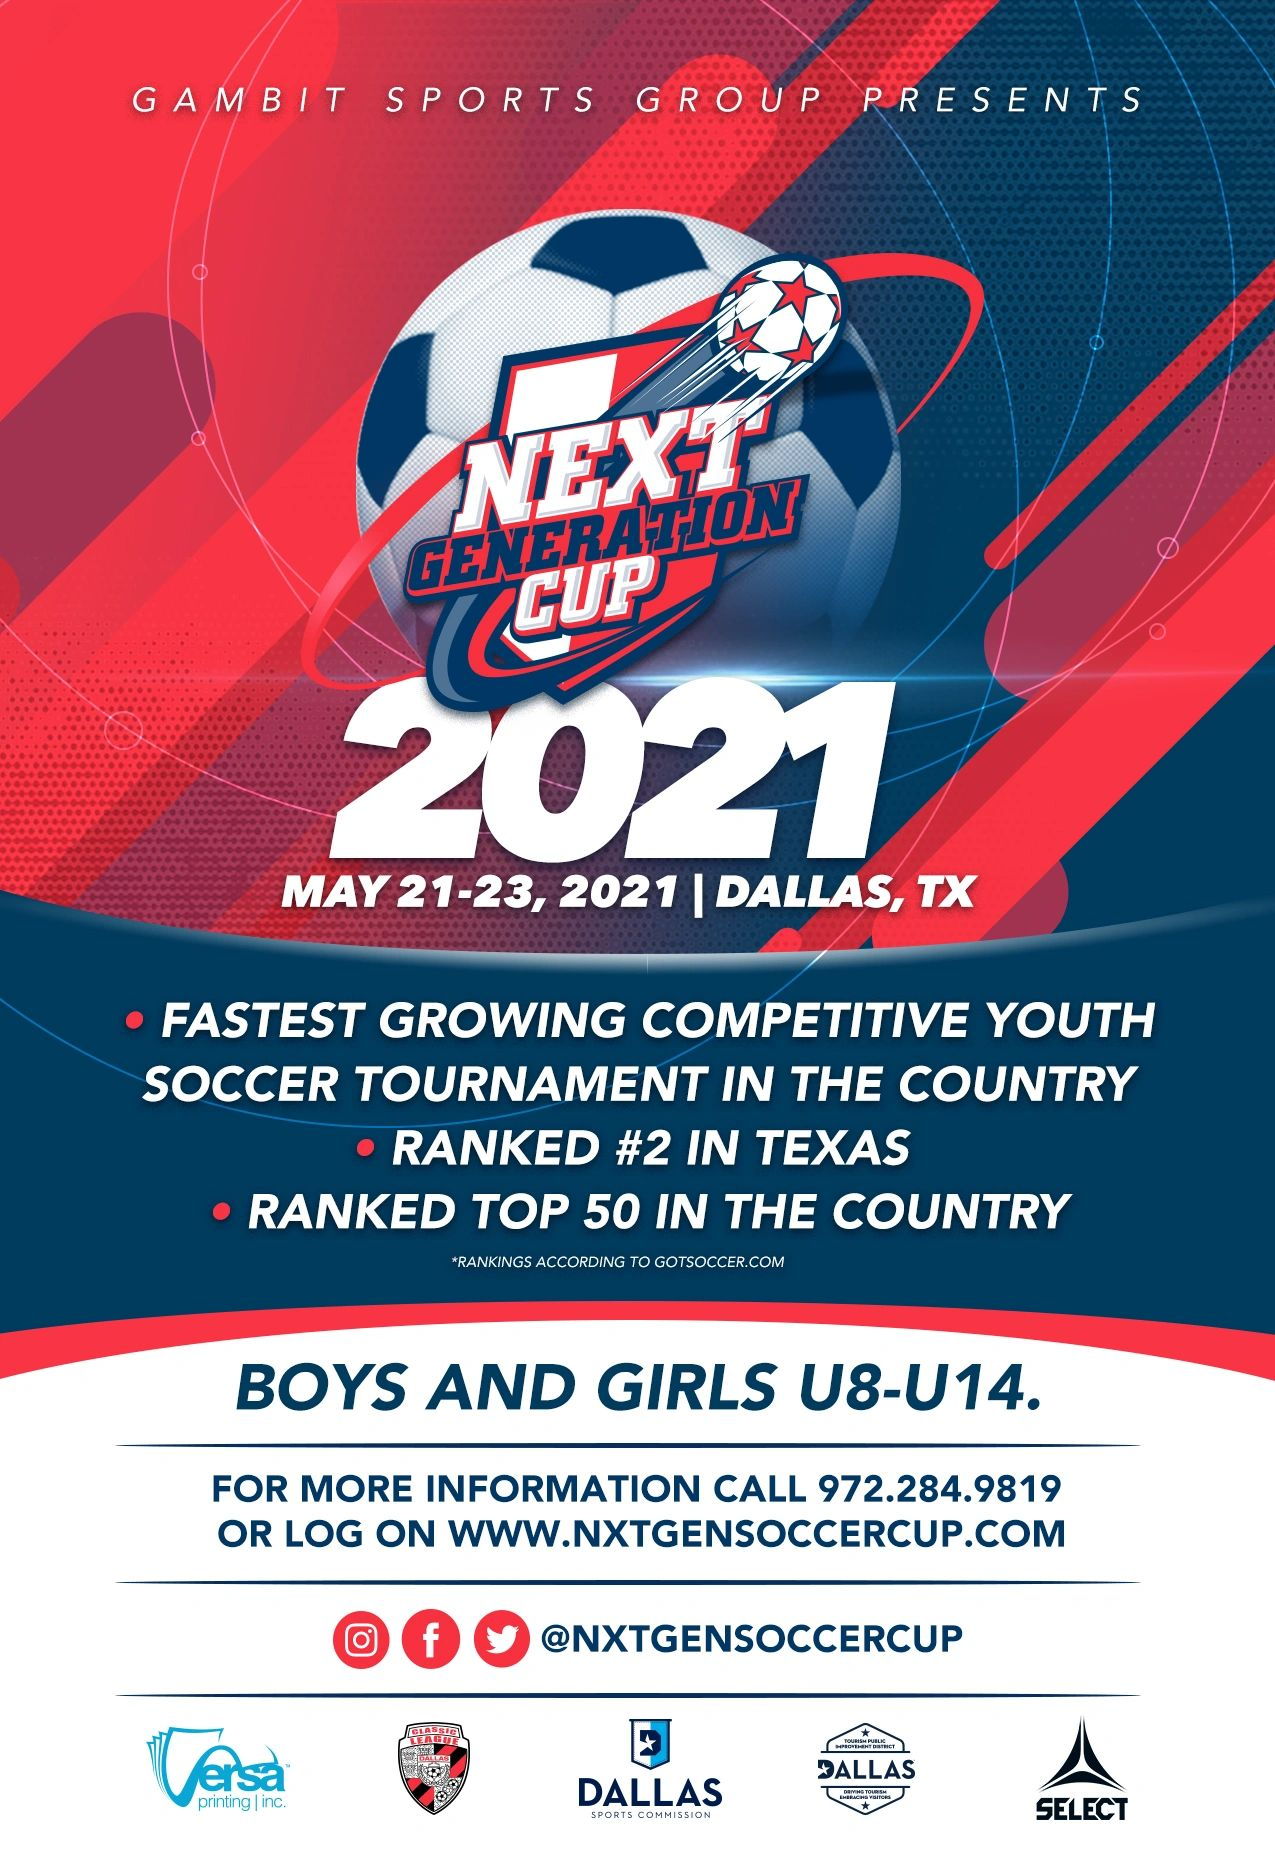 Next Generation Cup 2021 :